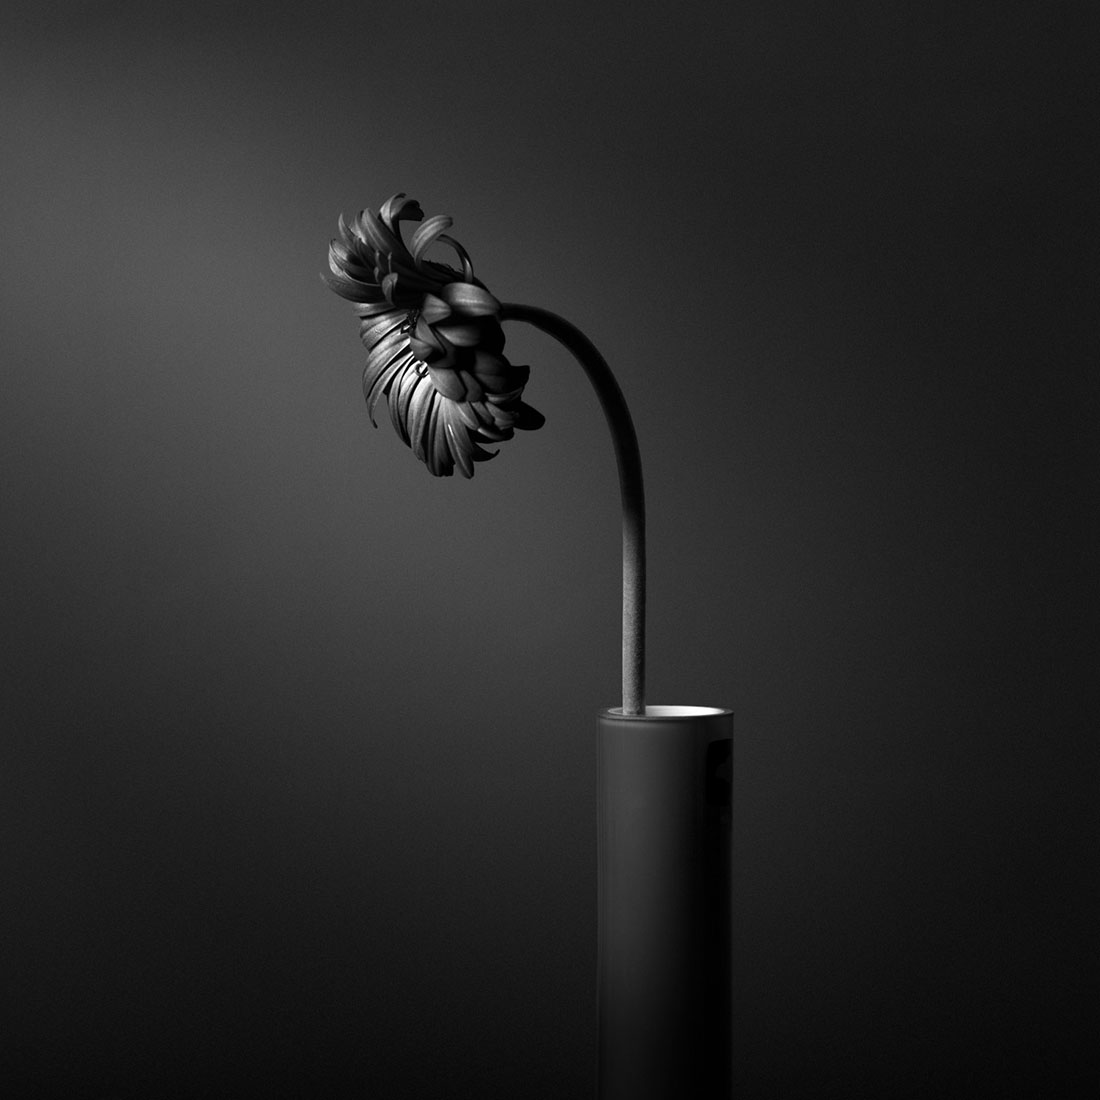 So what black and white floral still life photograph